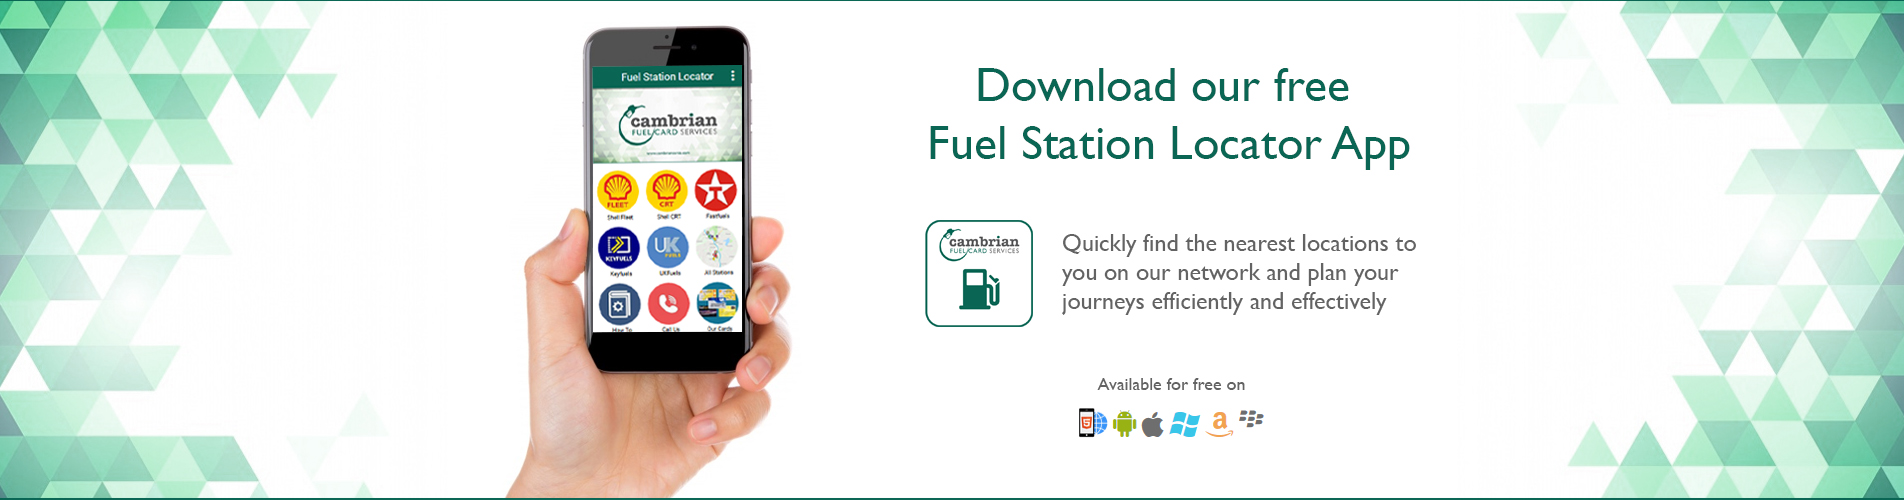 download our free fuel station locator app find out where you can use our fuel cards